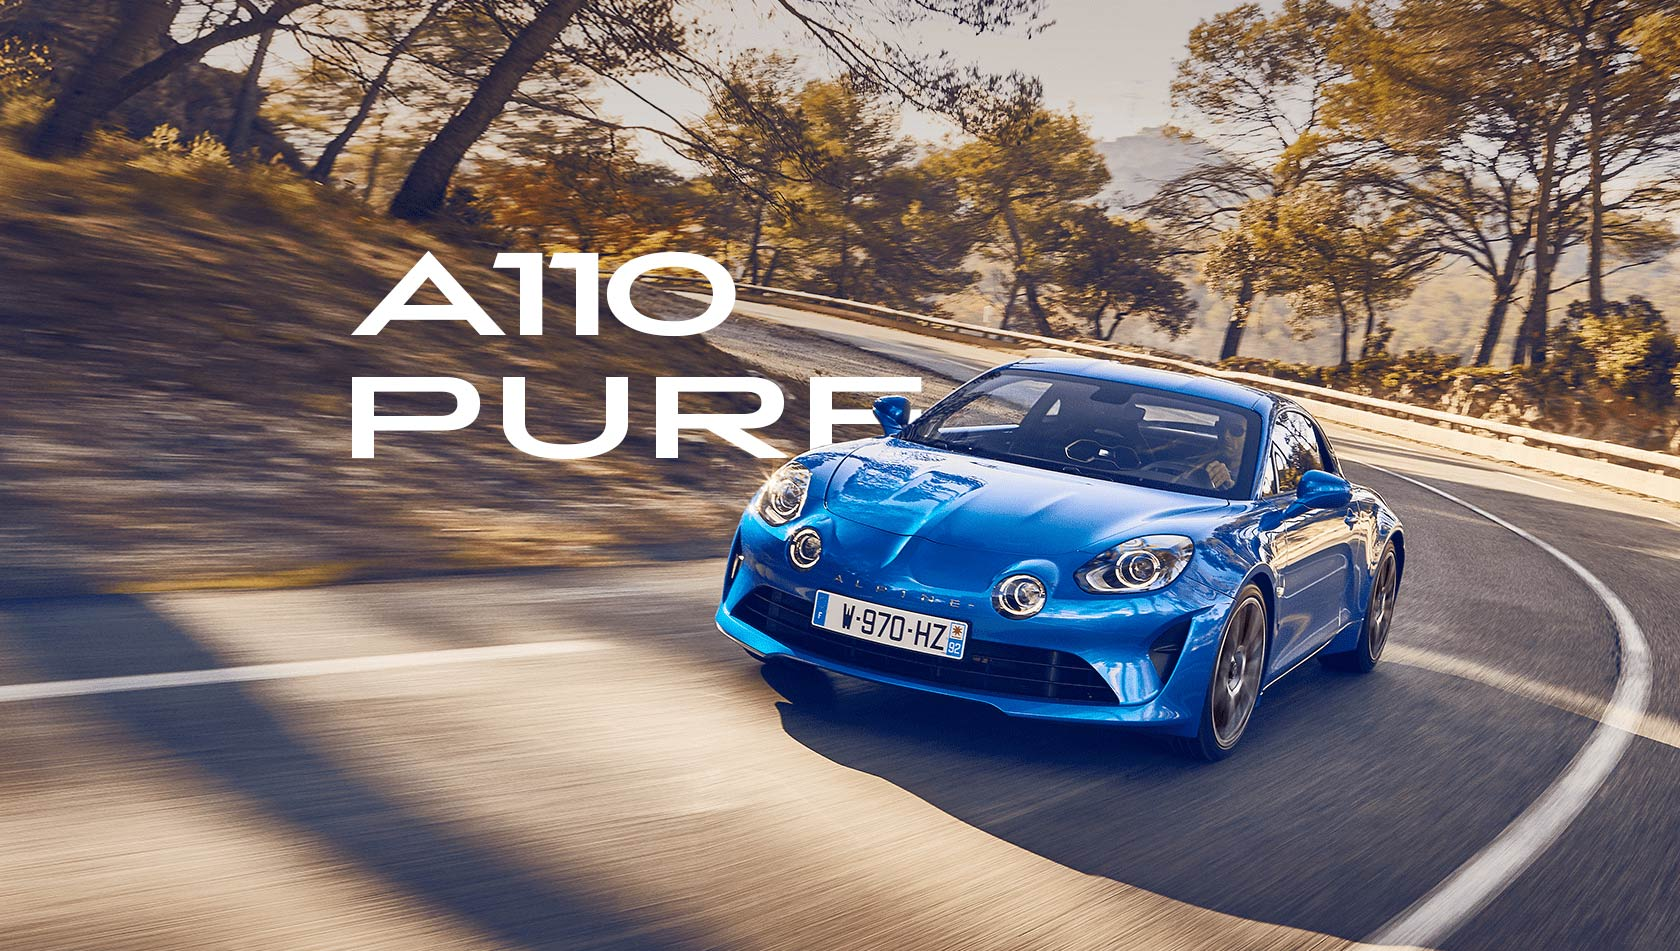 The A110 Pure